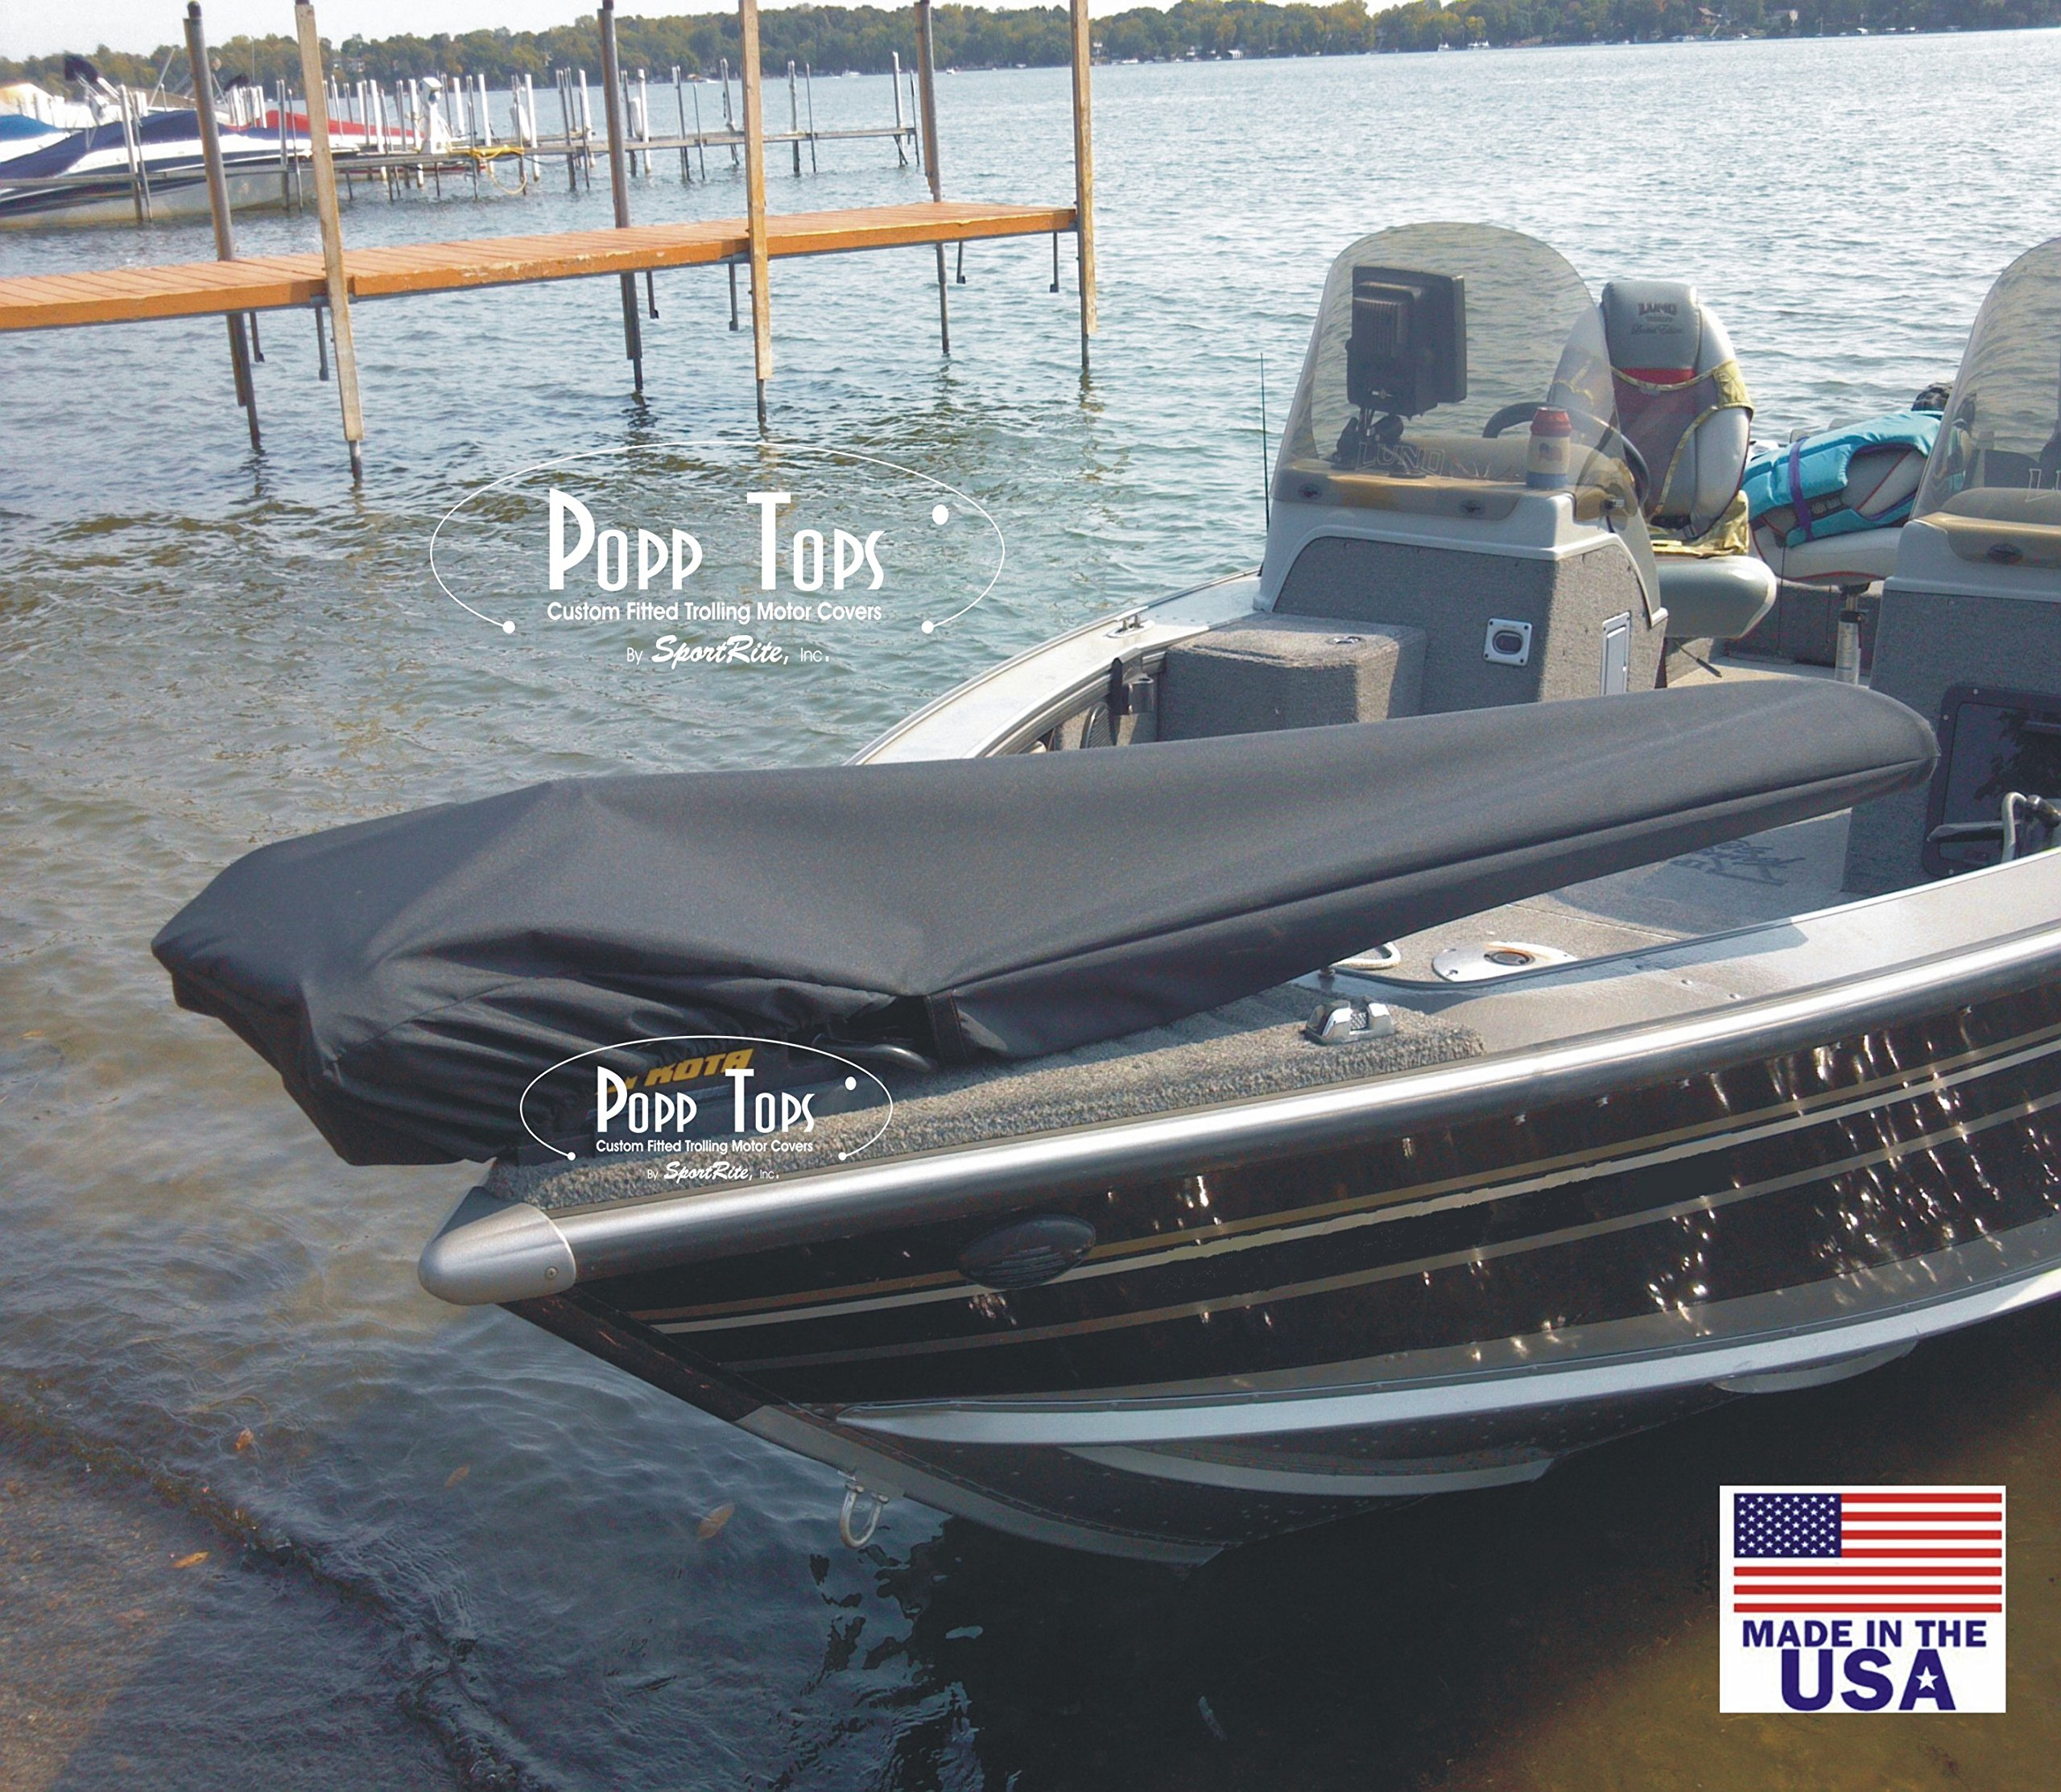 PoppTops Custom Covers Electric Trolling Motor Cover Fits Terrova w/Lift Assist and 54'' shaft. Black by Popp Tops Custom Covers